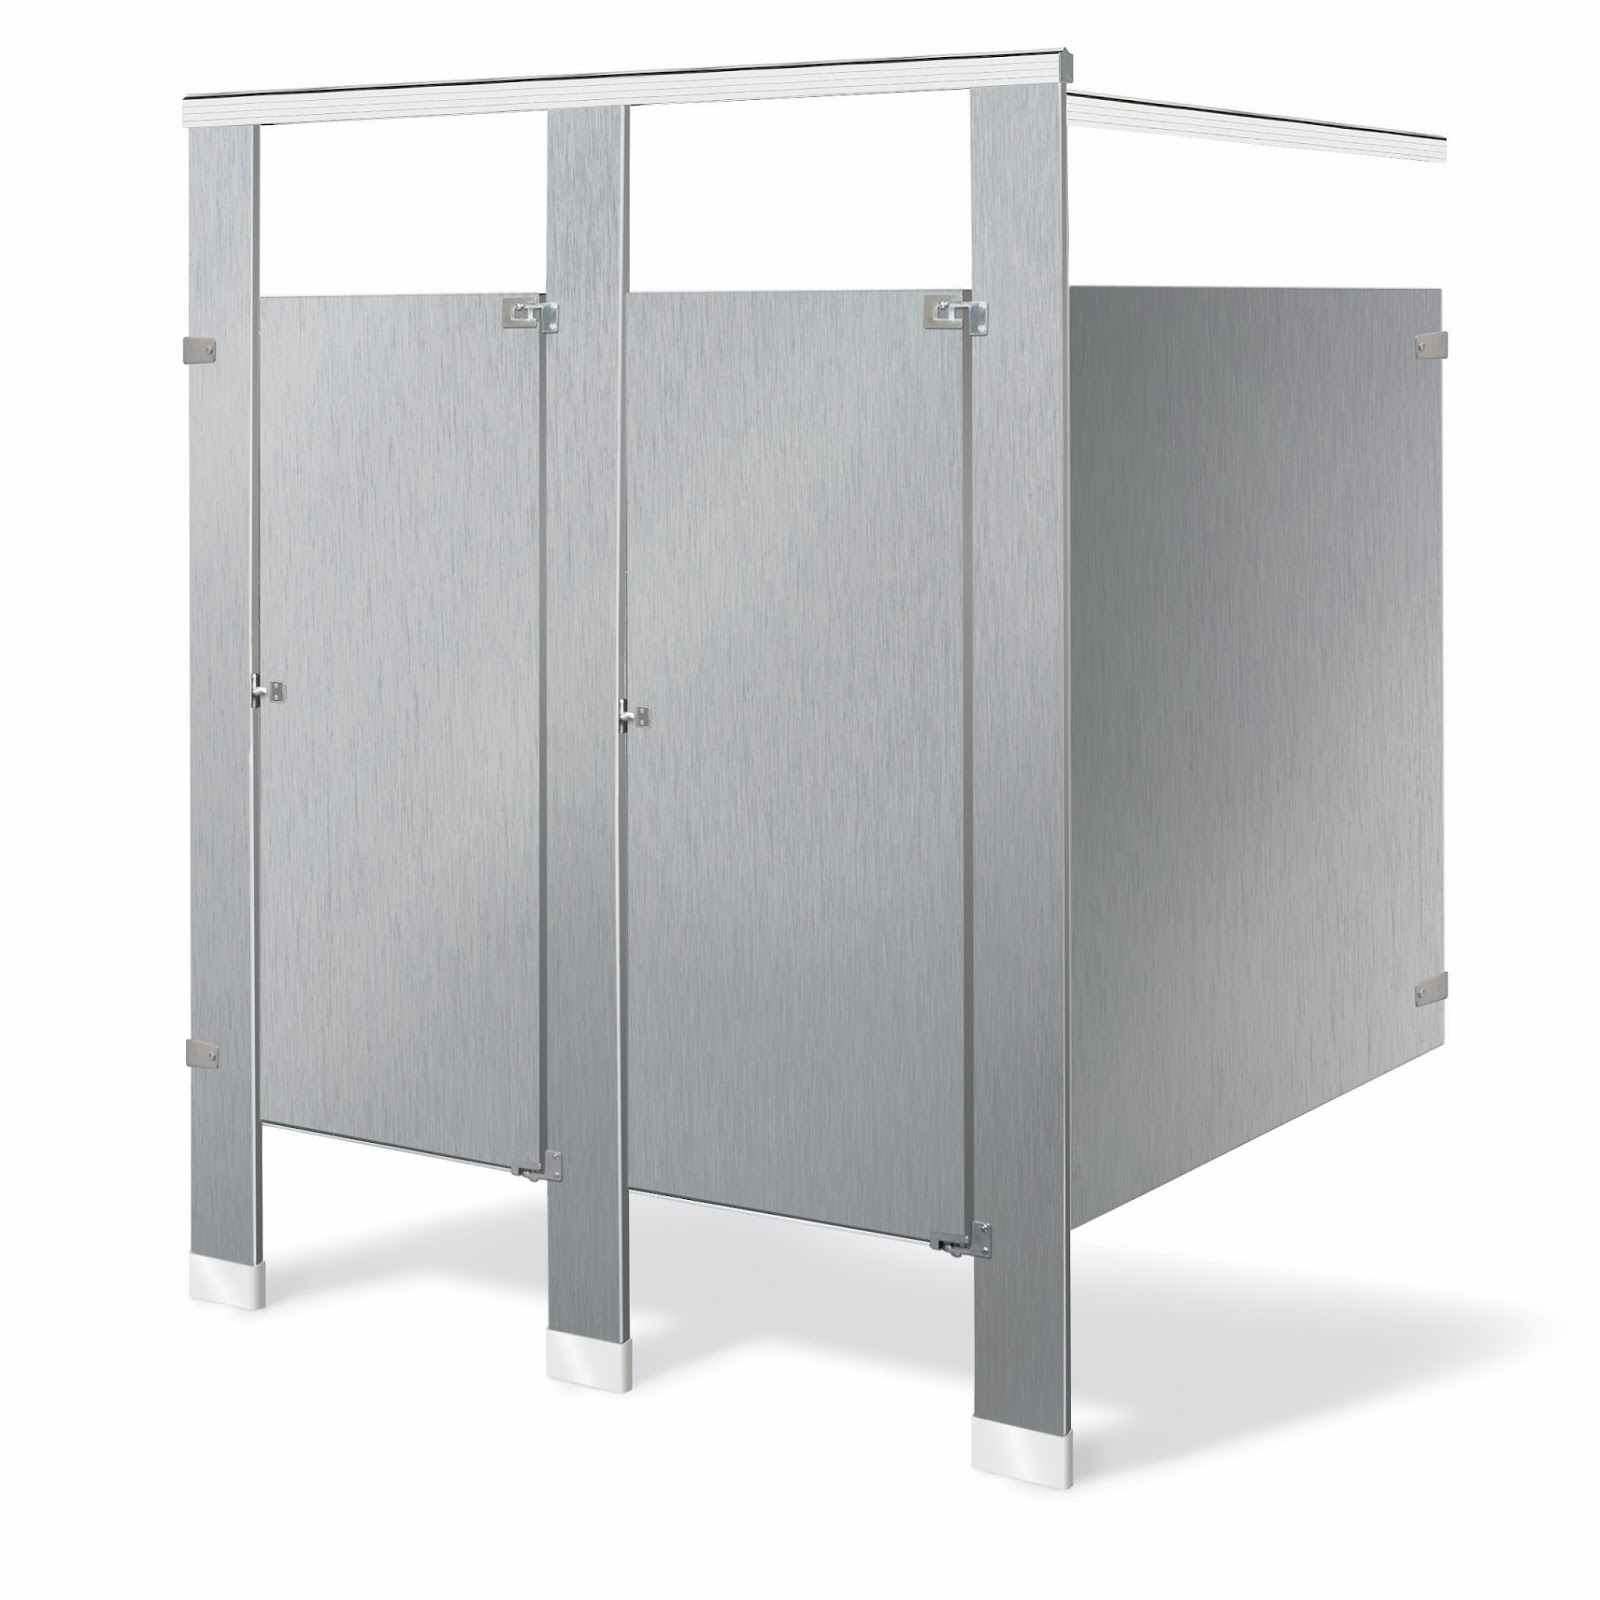 Stainless steel partitions review article for Stainless steel bathroom partitions